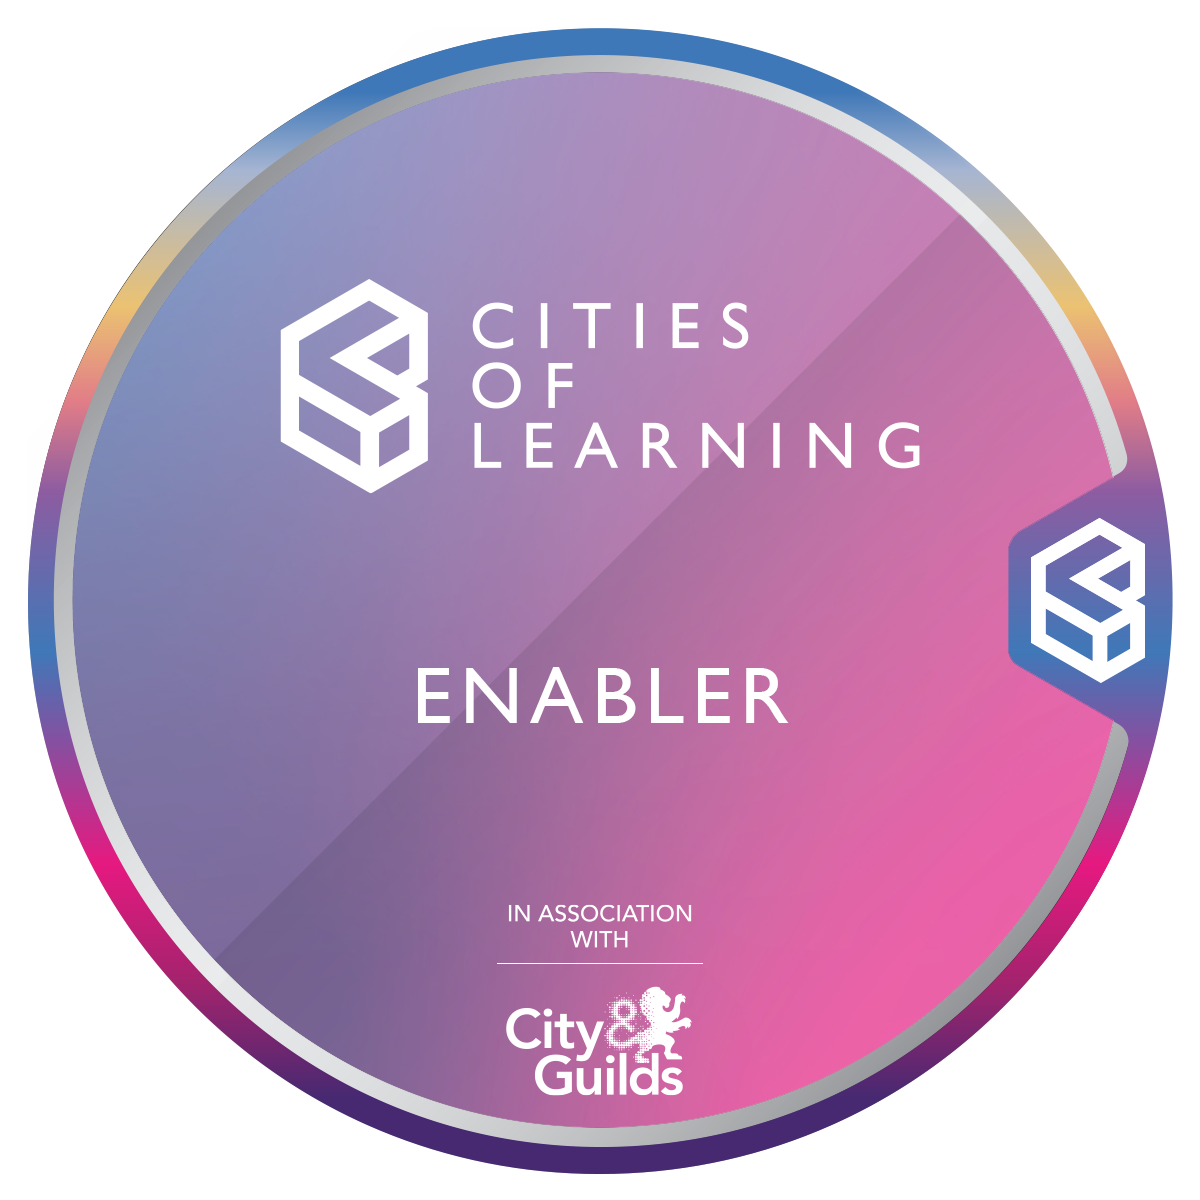 Cities of Learning Programme Enabler